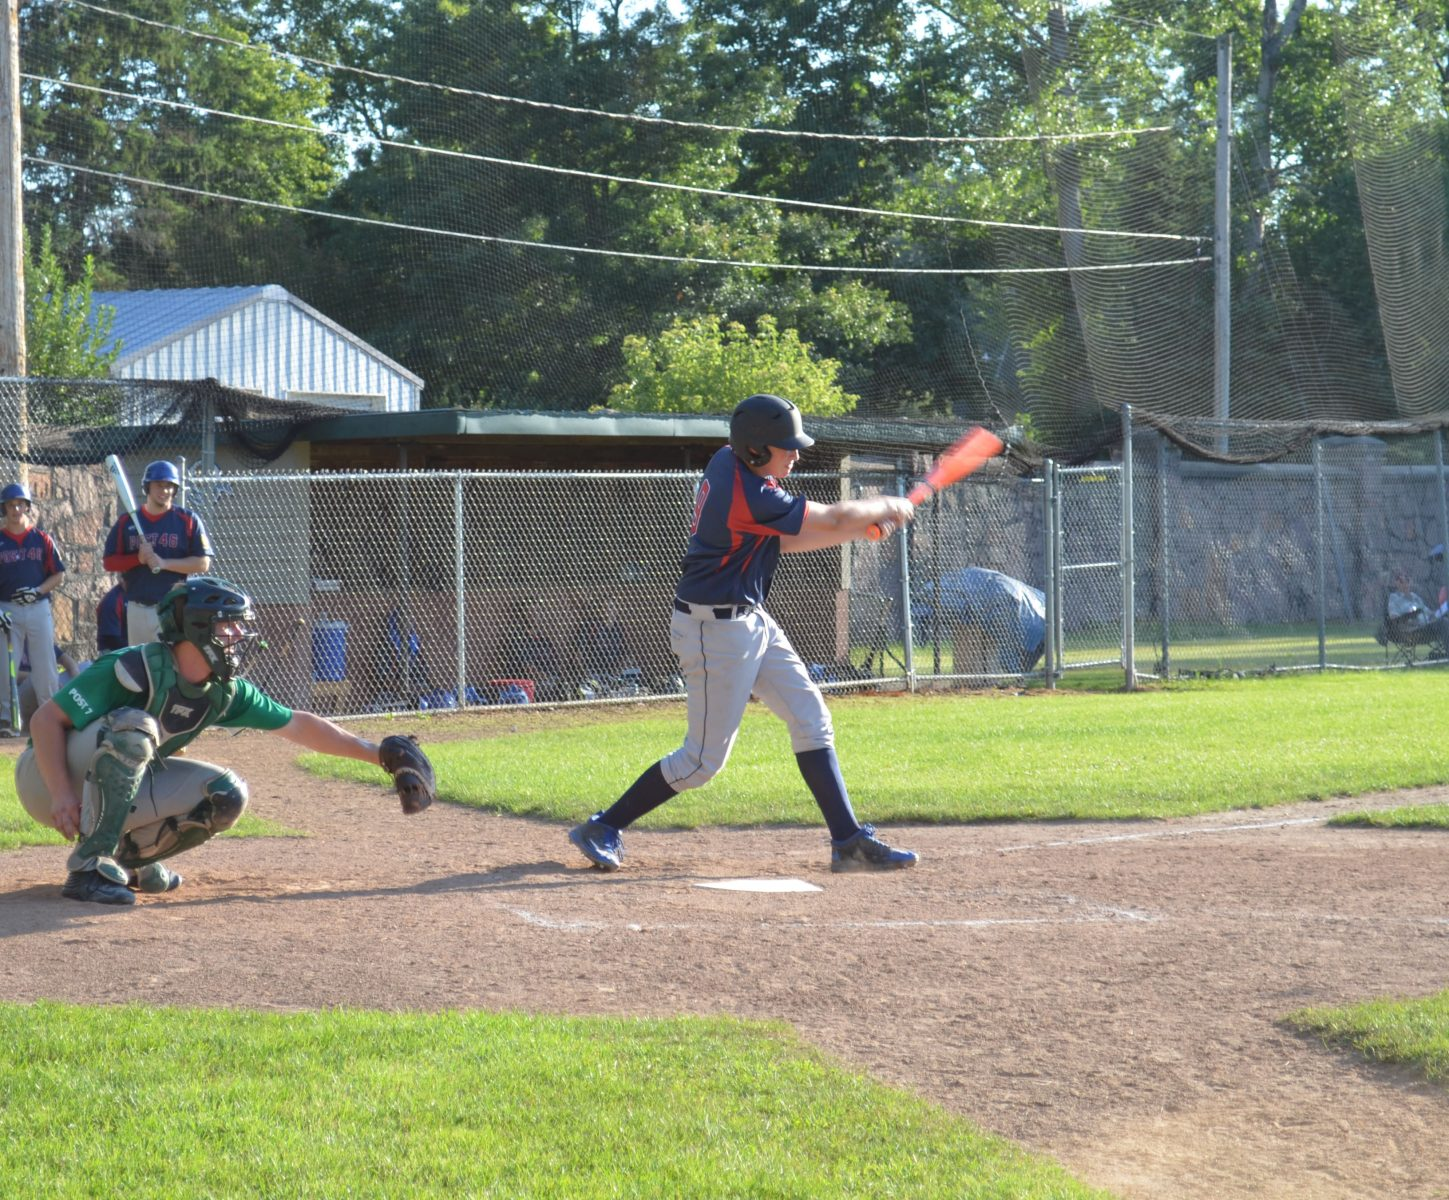 Trey Seubert hits a line drive to center during the Merrill-Rhinelander game.